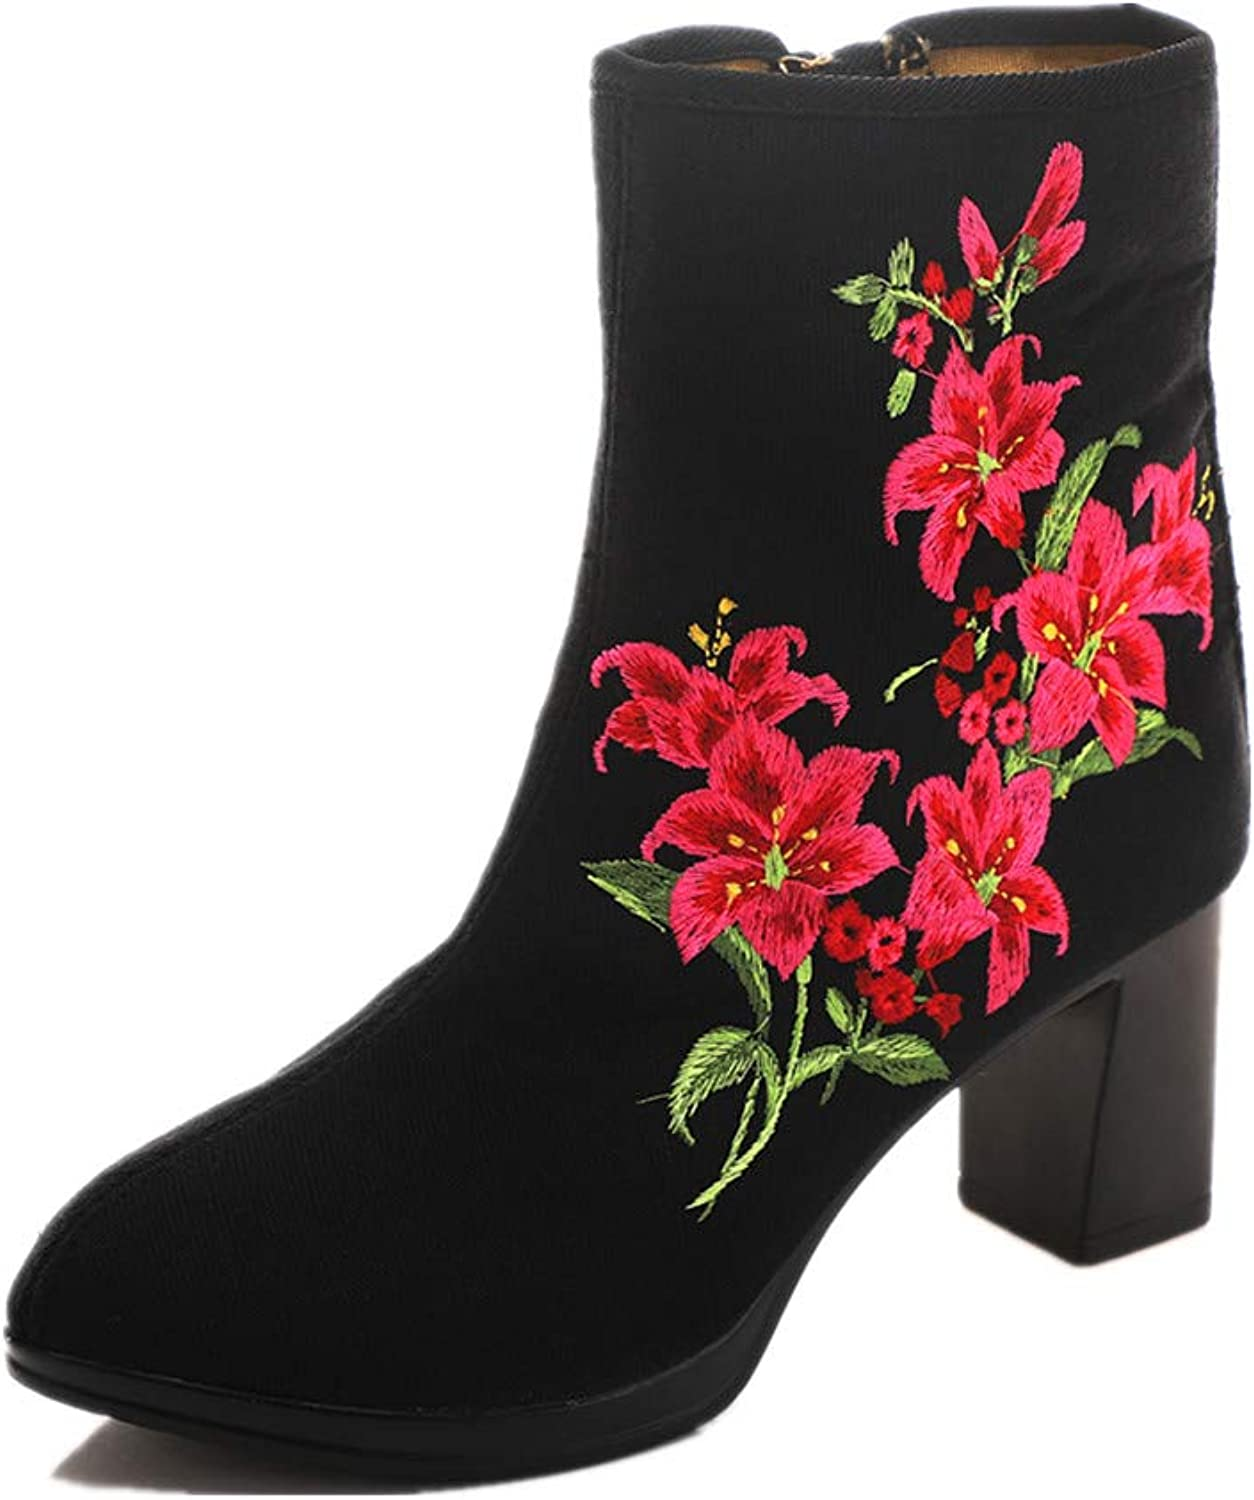 Tianrui Crown Women and Ladies Fllowers Embroidery Ankle Boots Square Heel Short Boot shoes